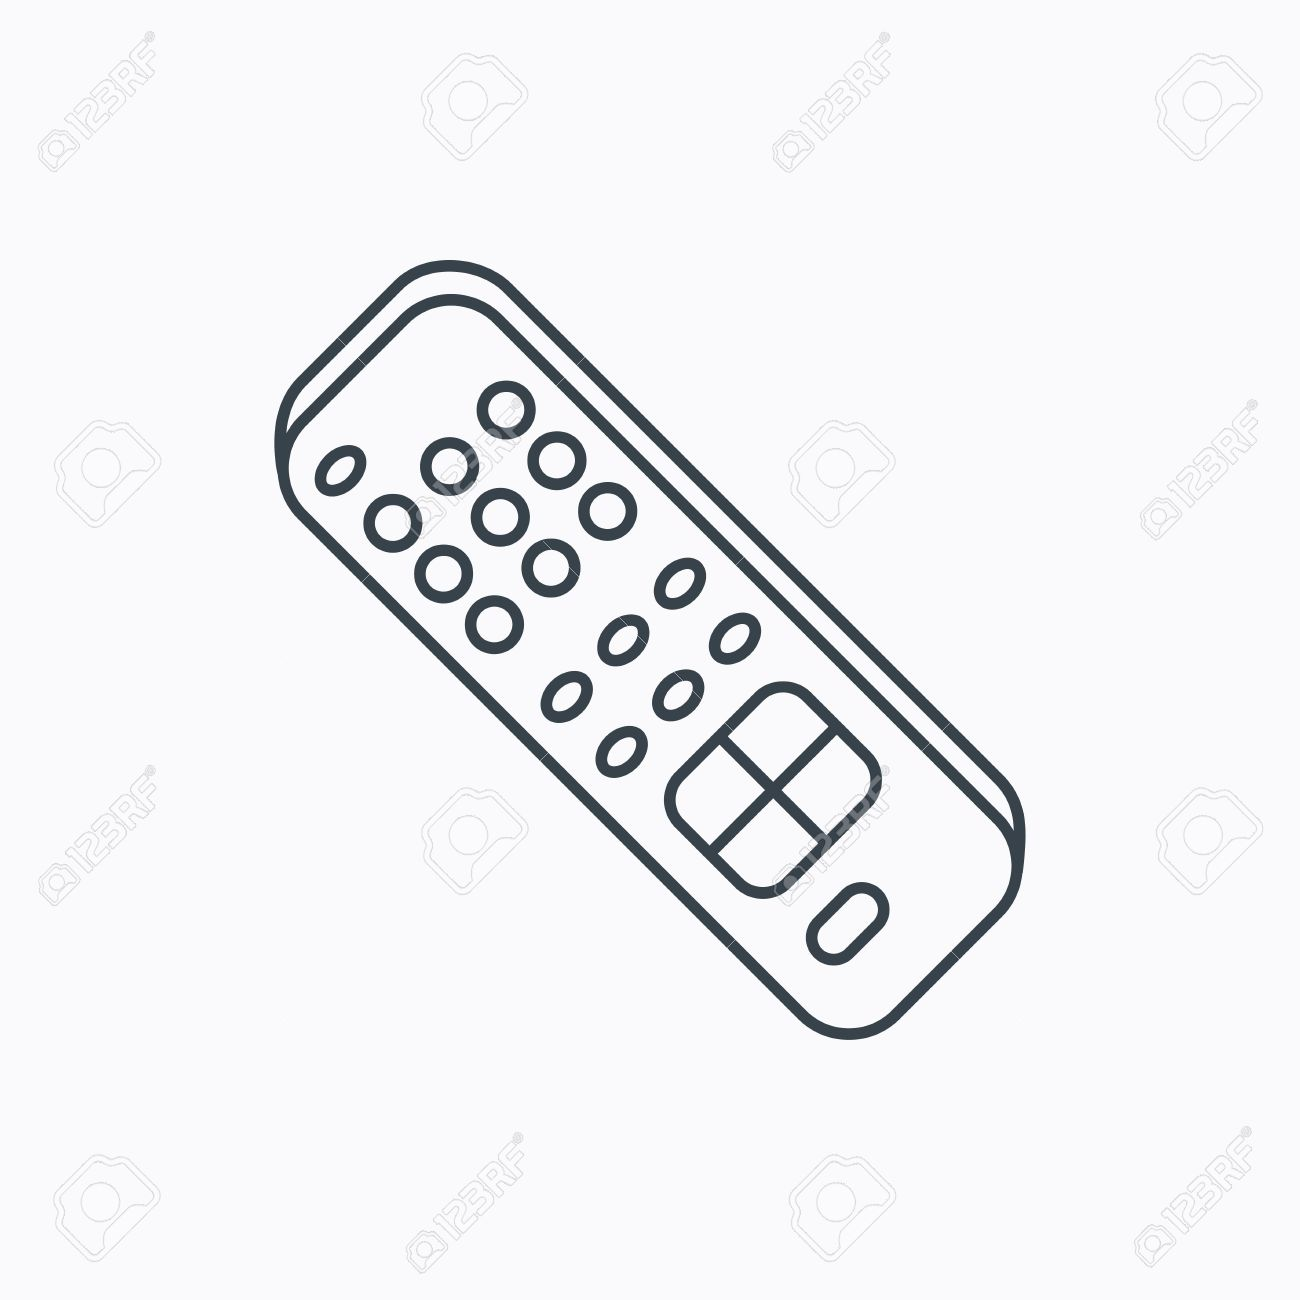 Tv Remote Drawing At Free For Personal Use Control Jammer Circuit Diagram 1300x1300 Icon Switching Channels Sign Linear Outline